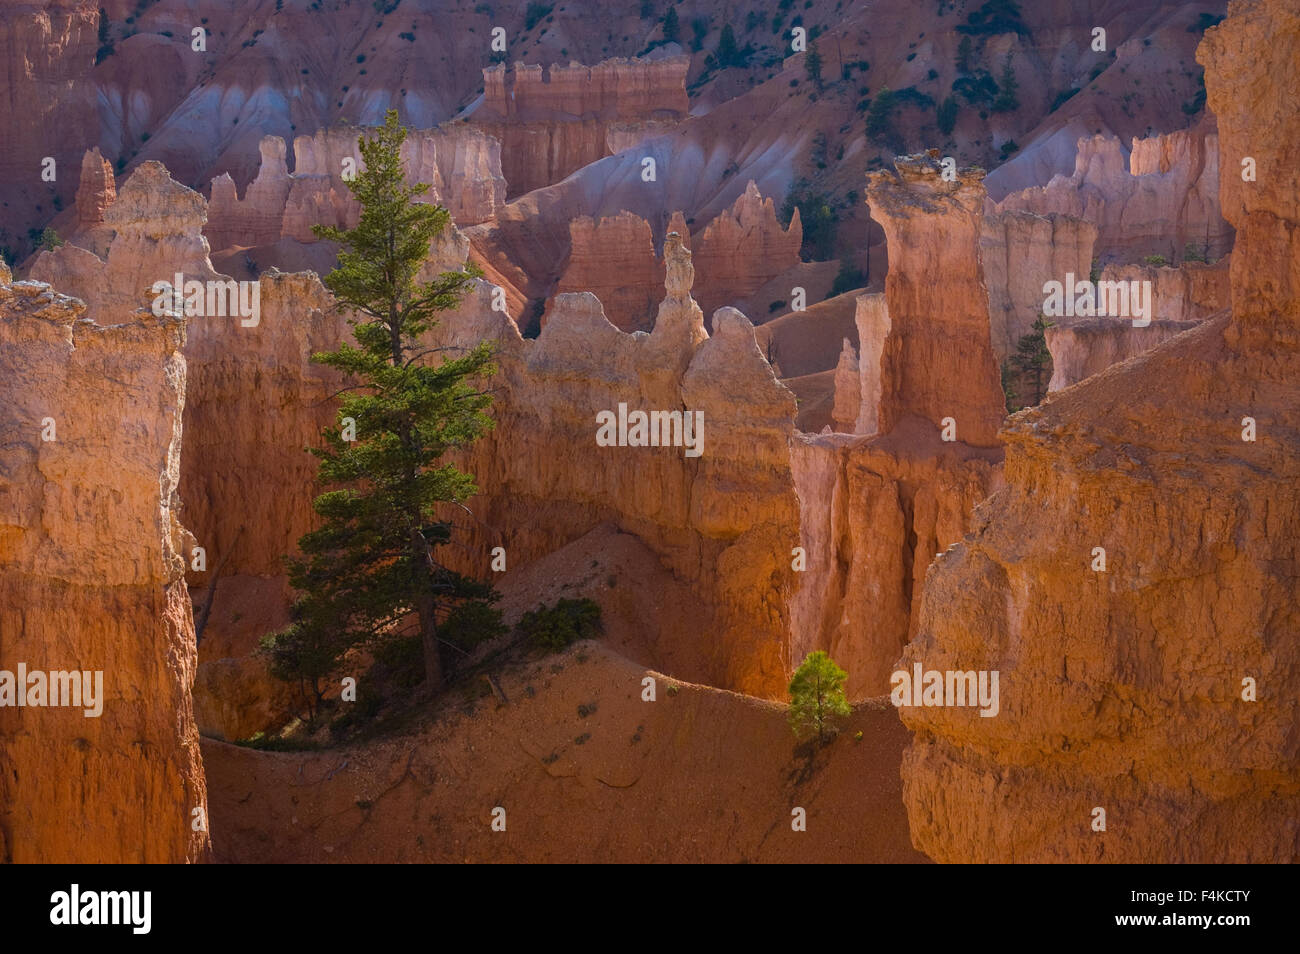 Conifer, Bryce Canyon National Park, Utah, USA. - Stock Image